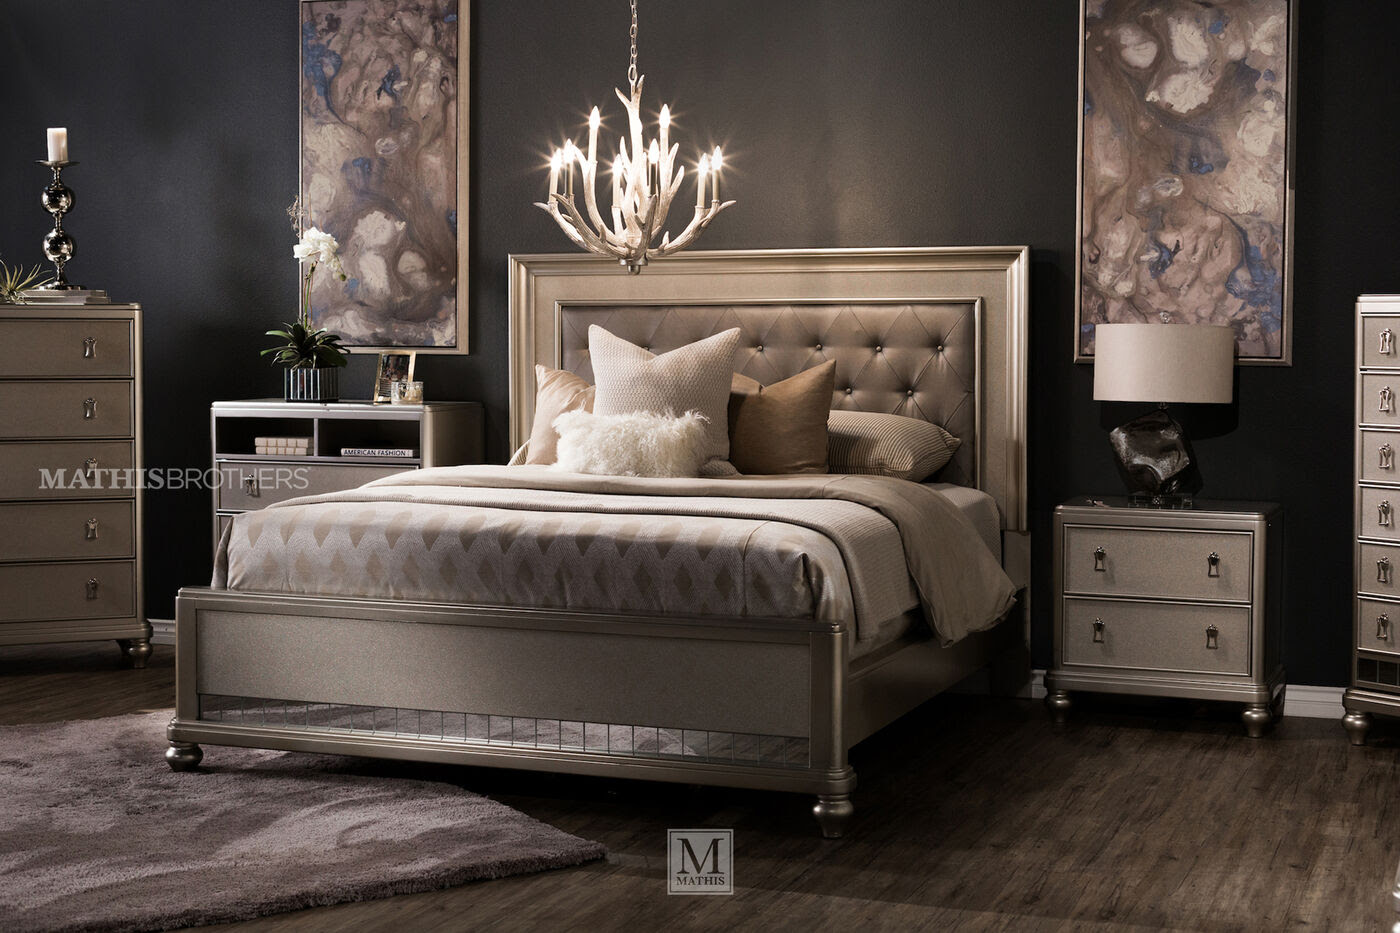 Mathis Brothers Bedroom Furniture | Wallpaper Home